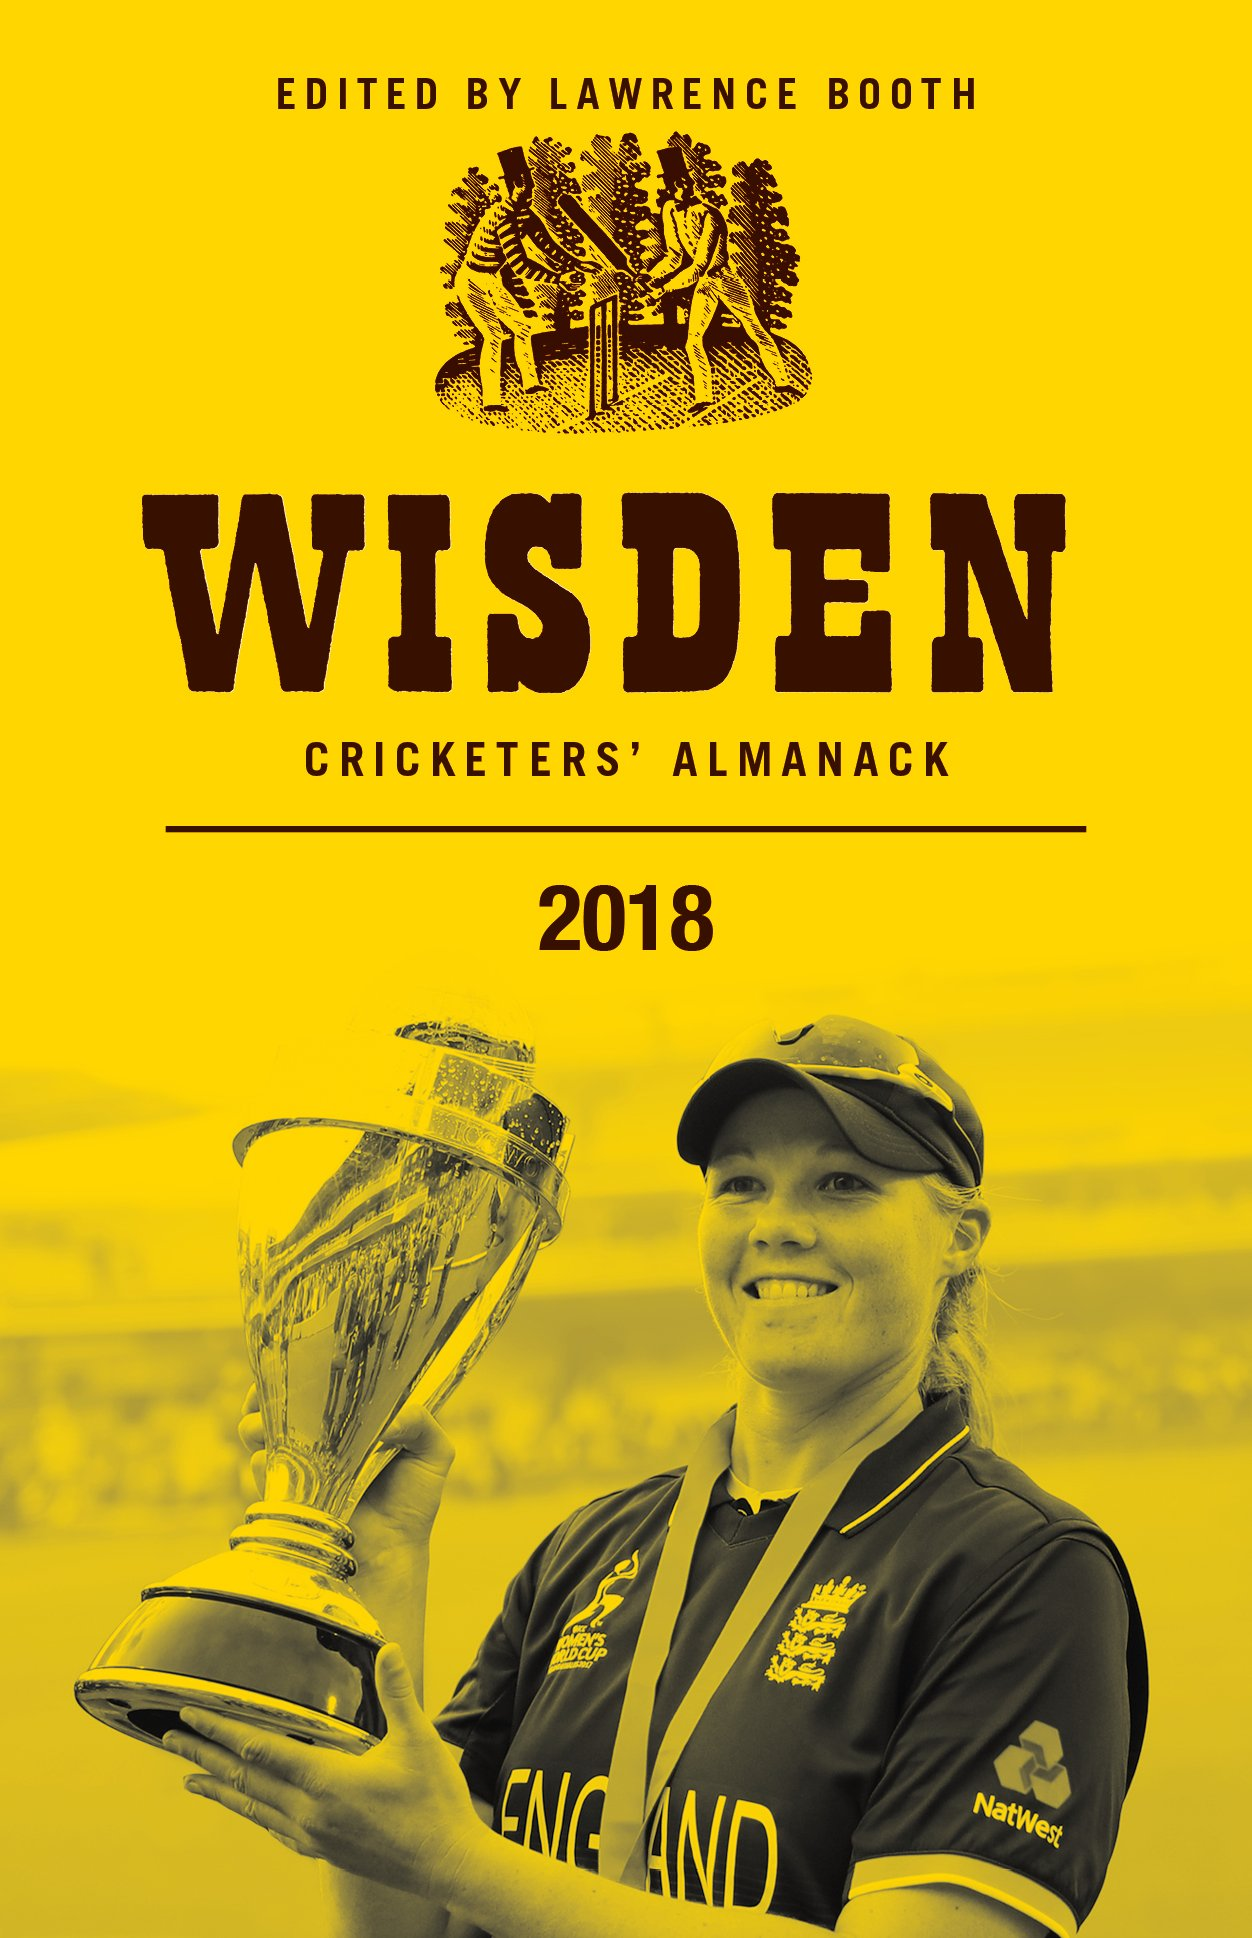 COVER STAR: Anya Shrubsole on the jacket of Wisden.